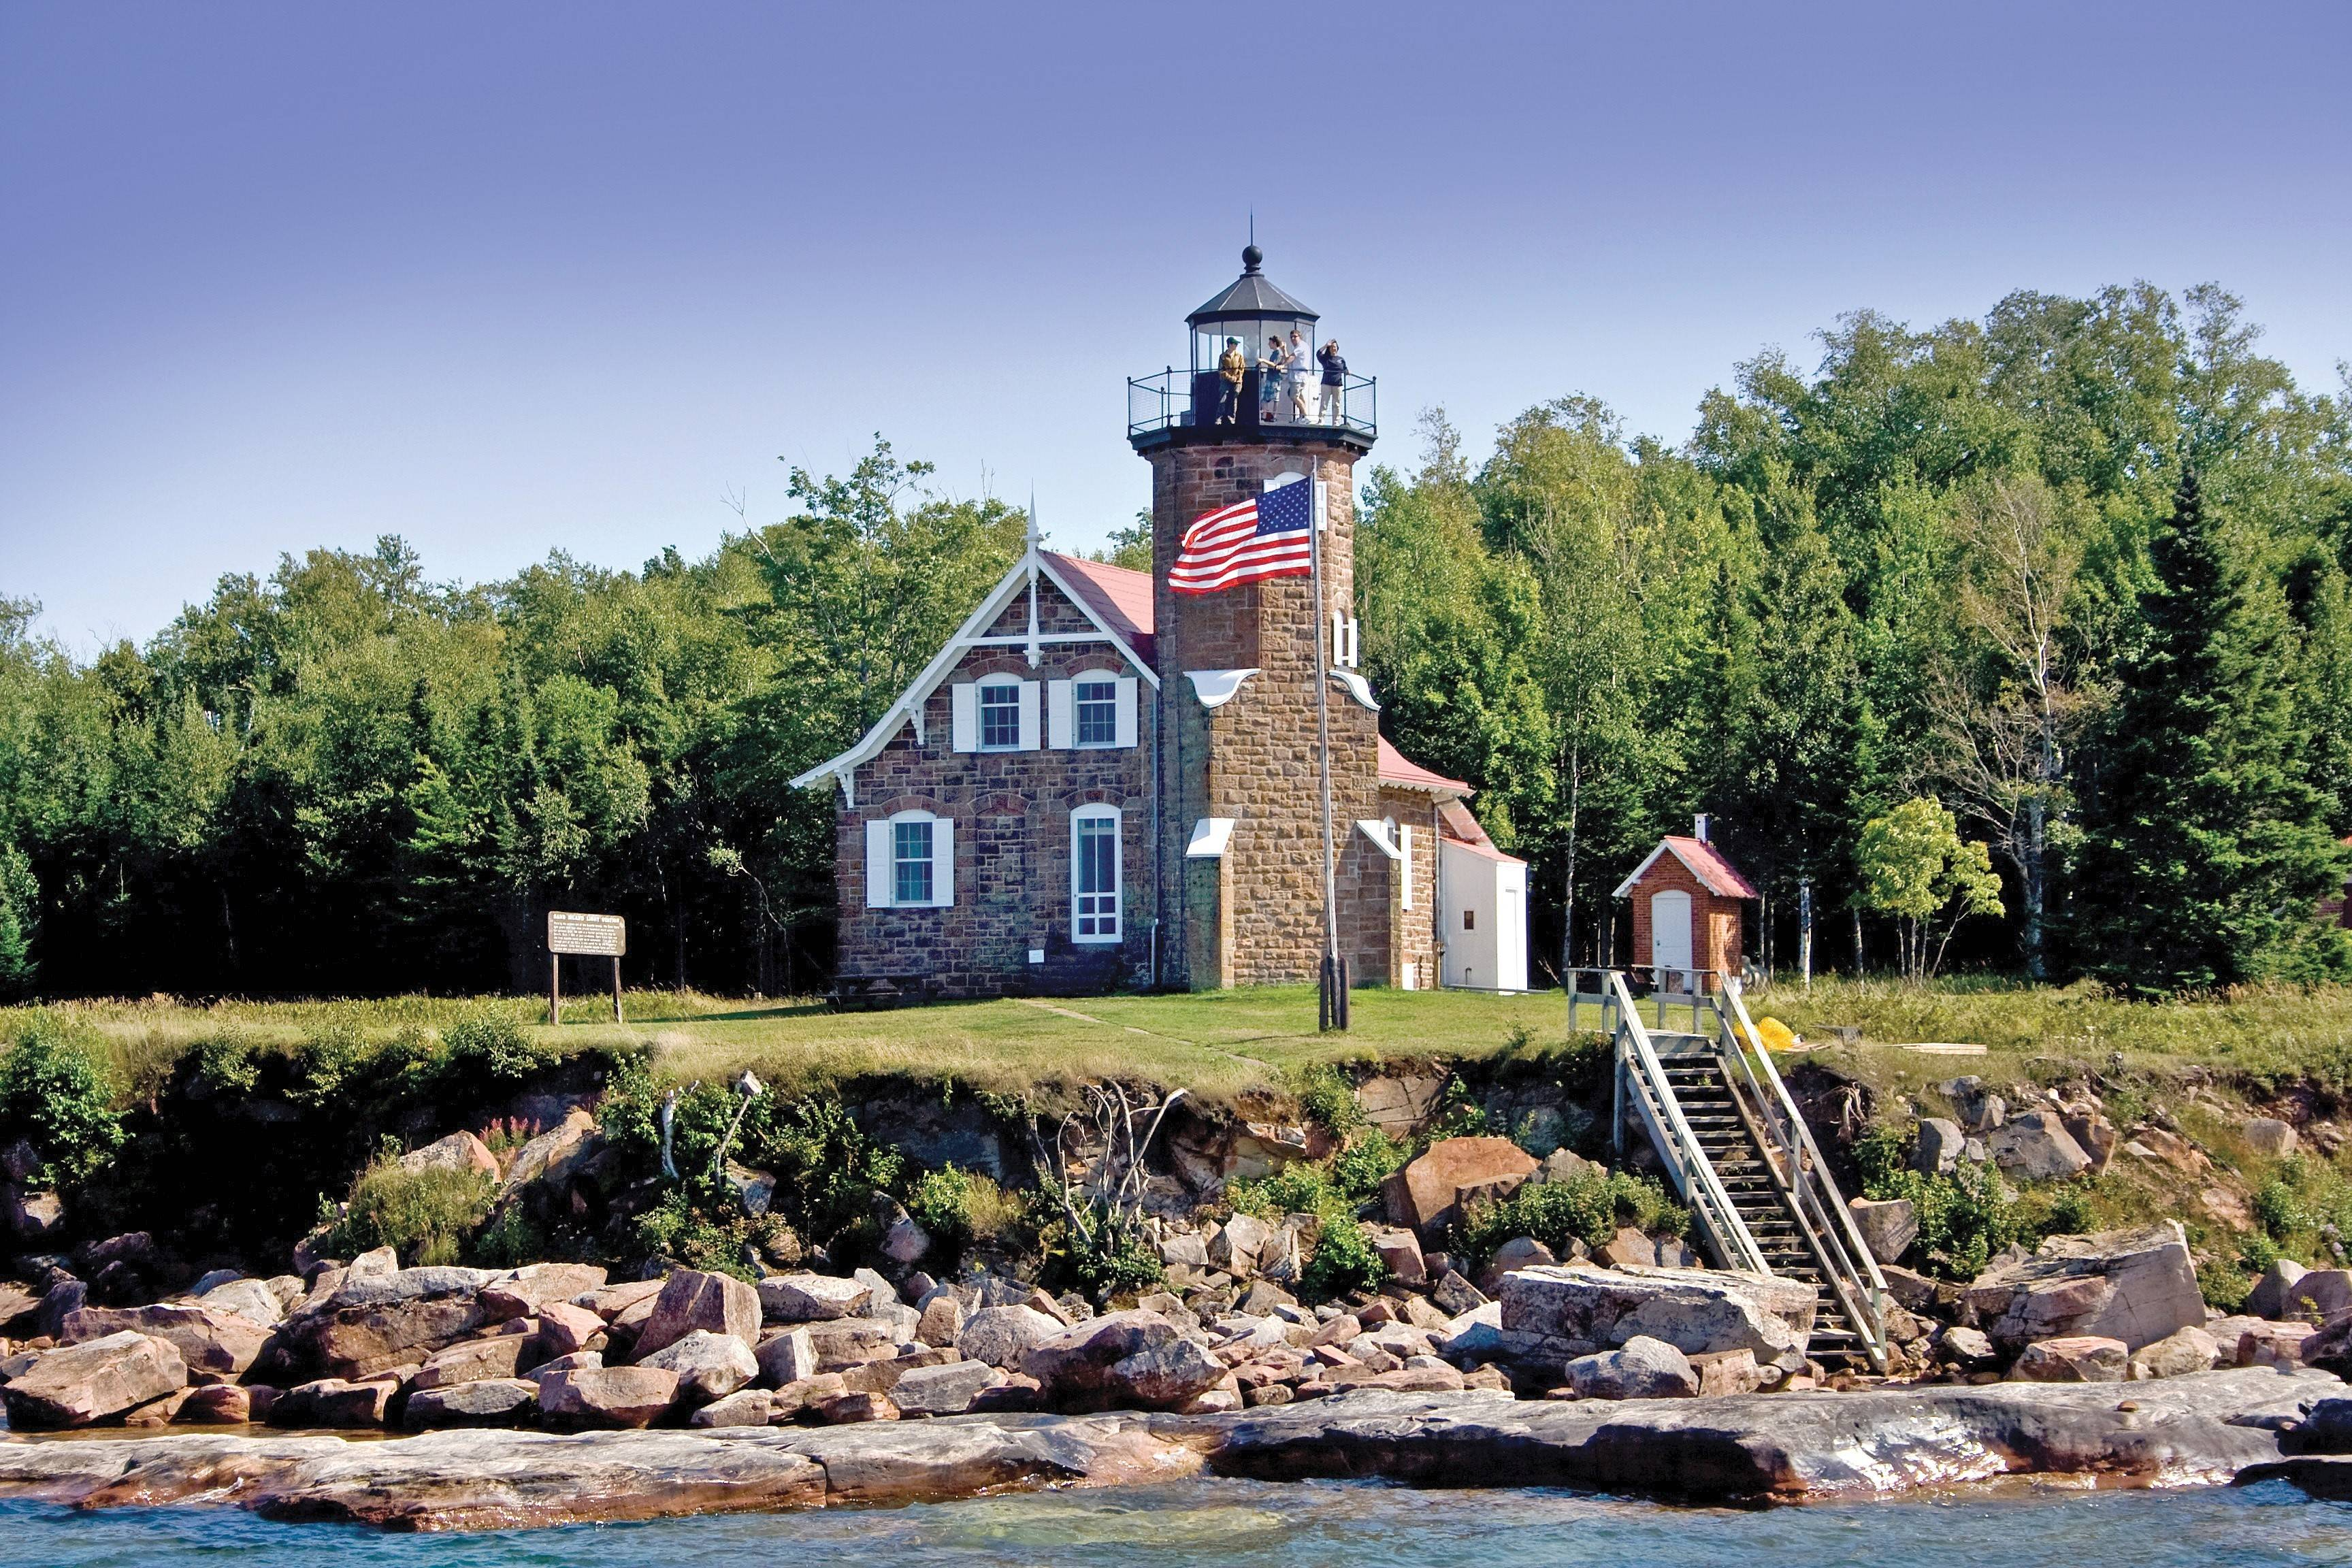 The 19th annual Apostle Islands Lighthouse Celebration takes place Sept. 3-20.